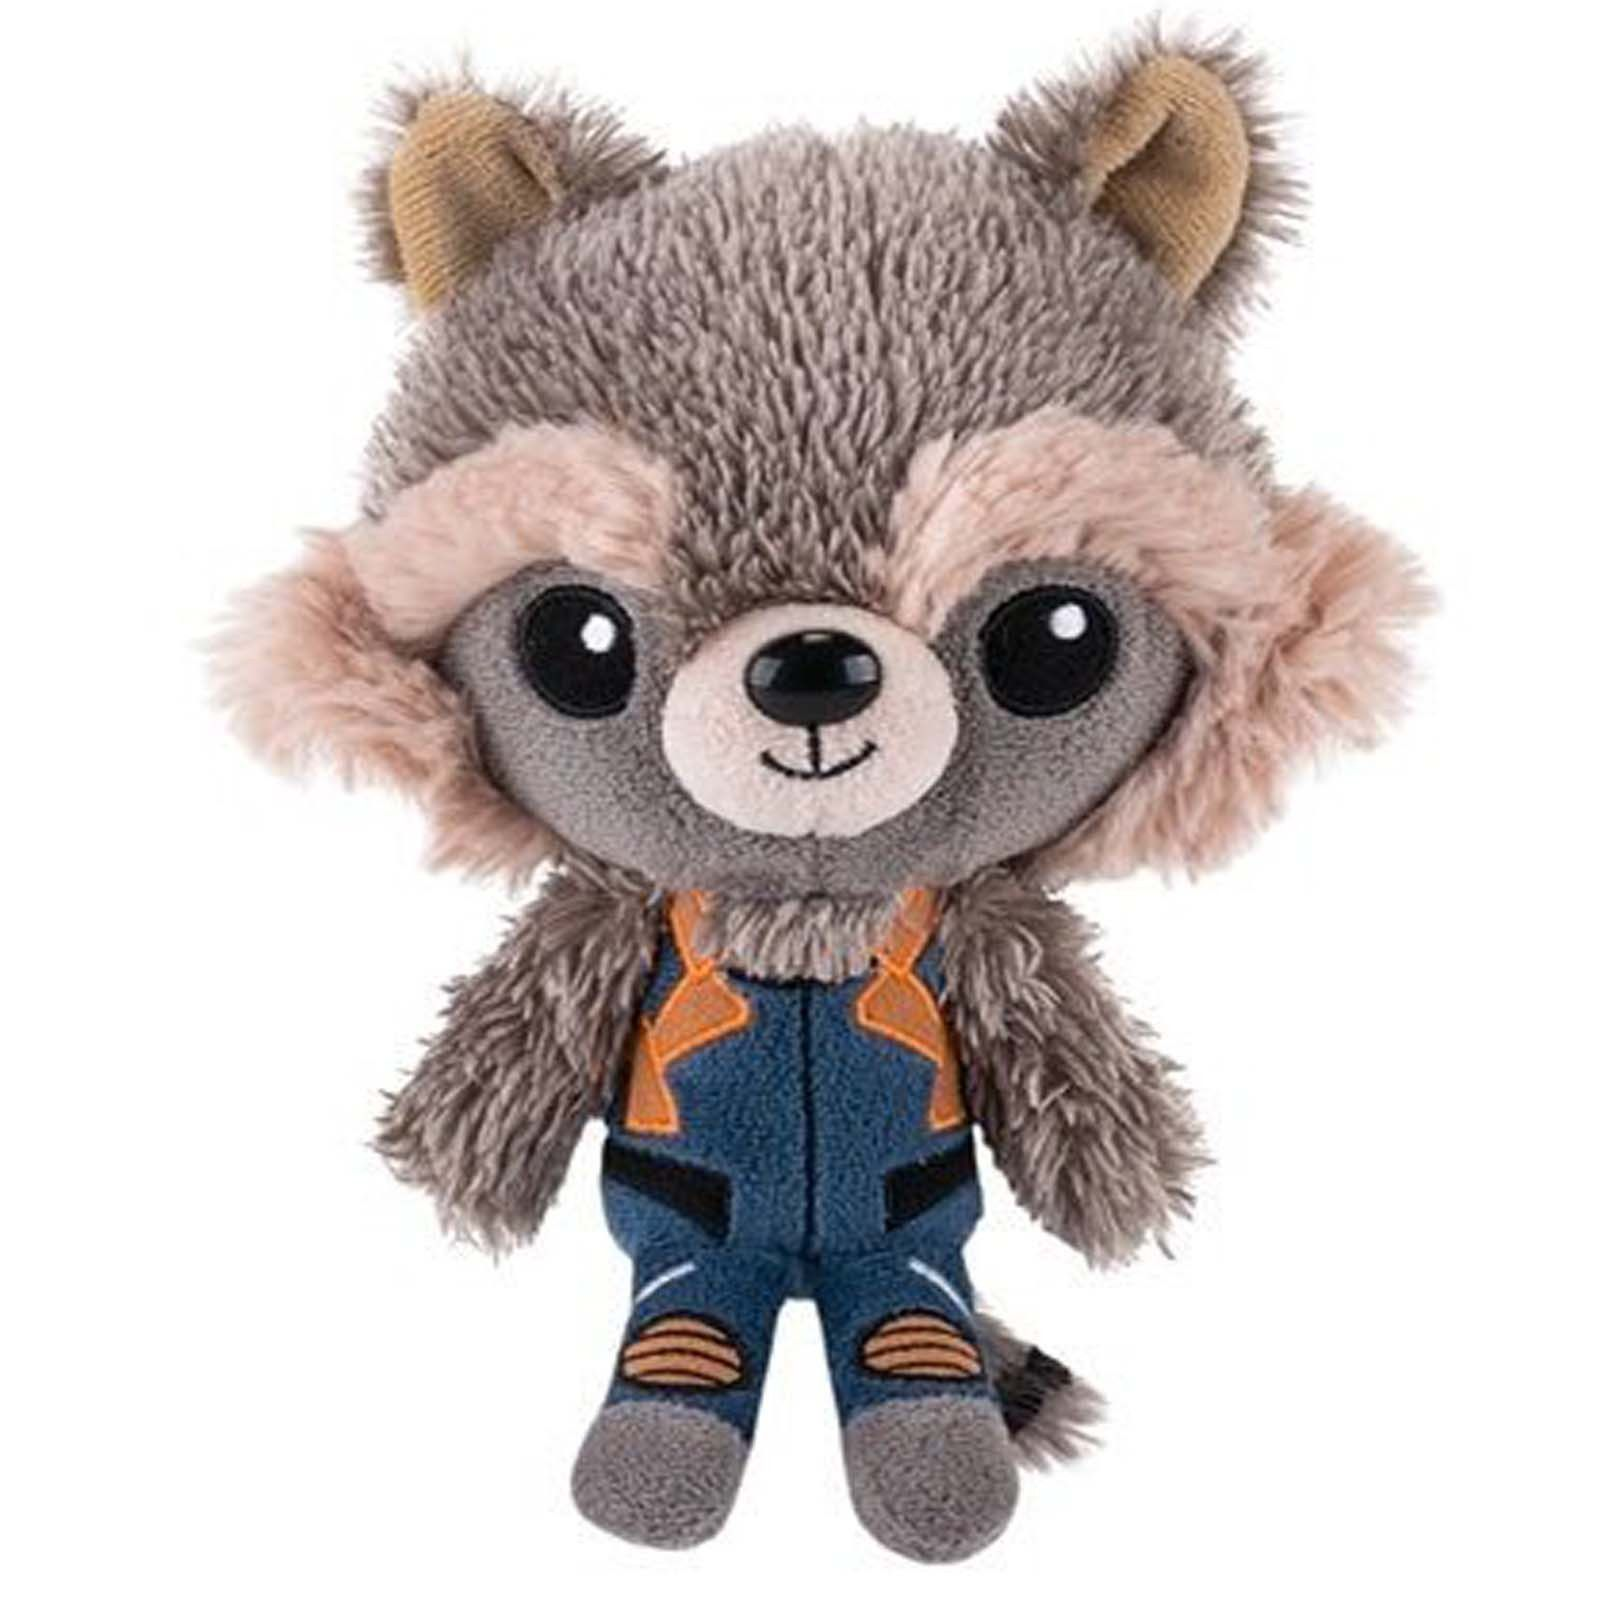 *NEW* Guardians of the Galaxy Rocket Racoon Fabrikations Soft Sculpture Figure